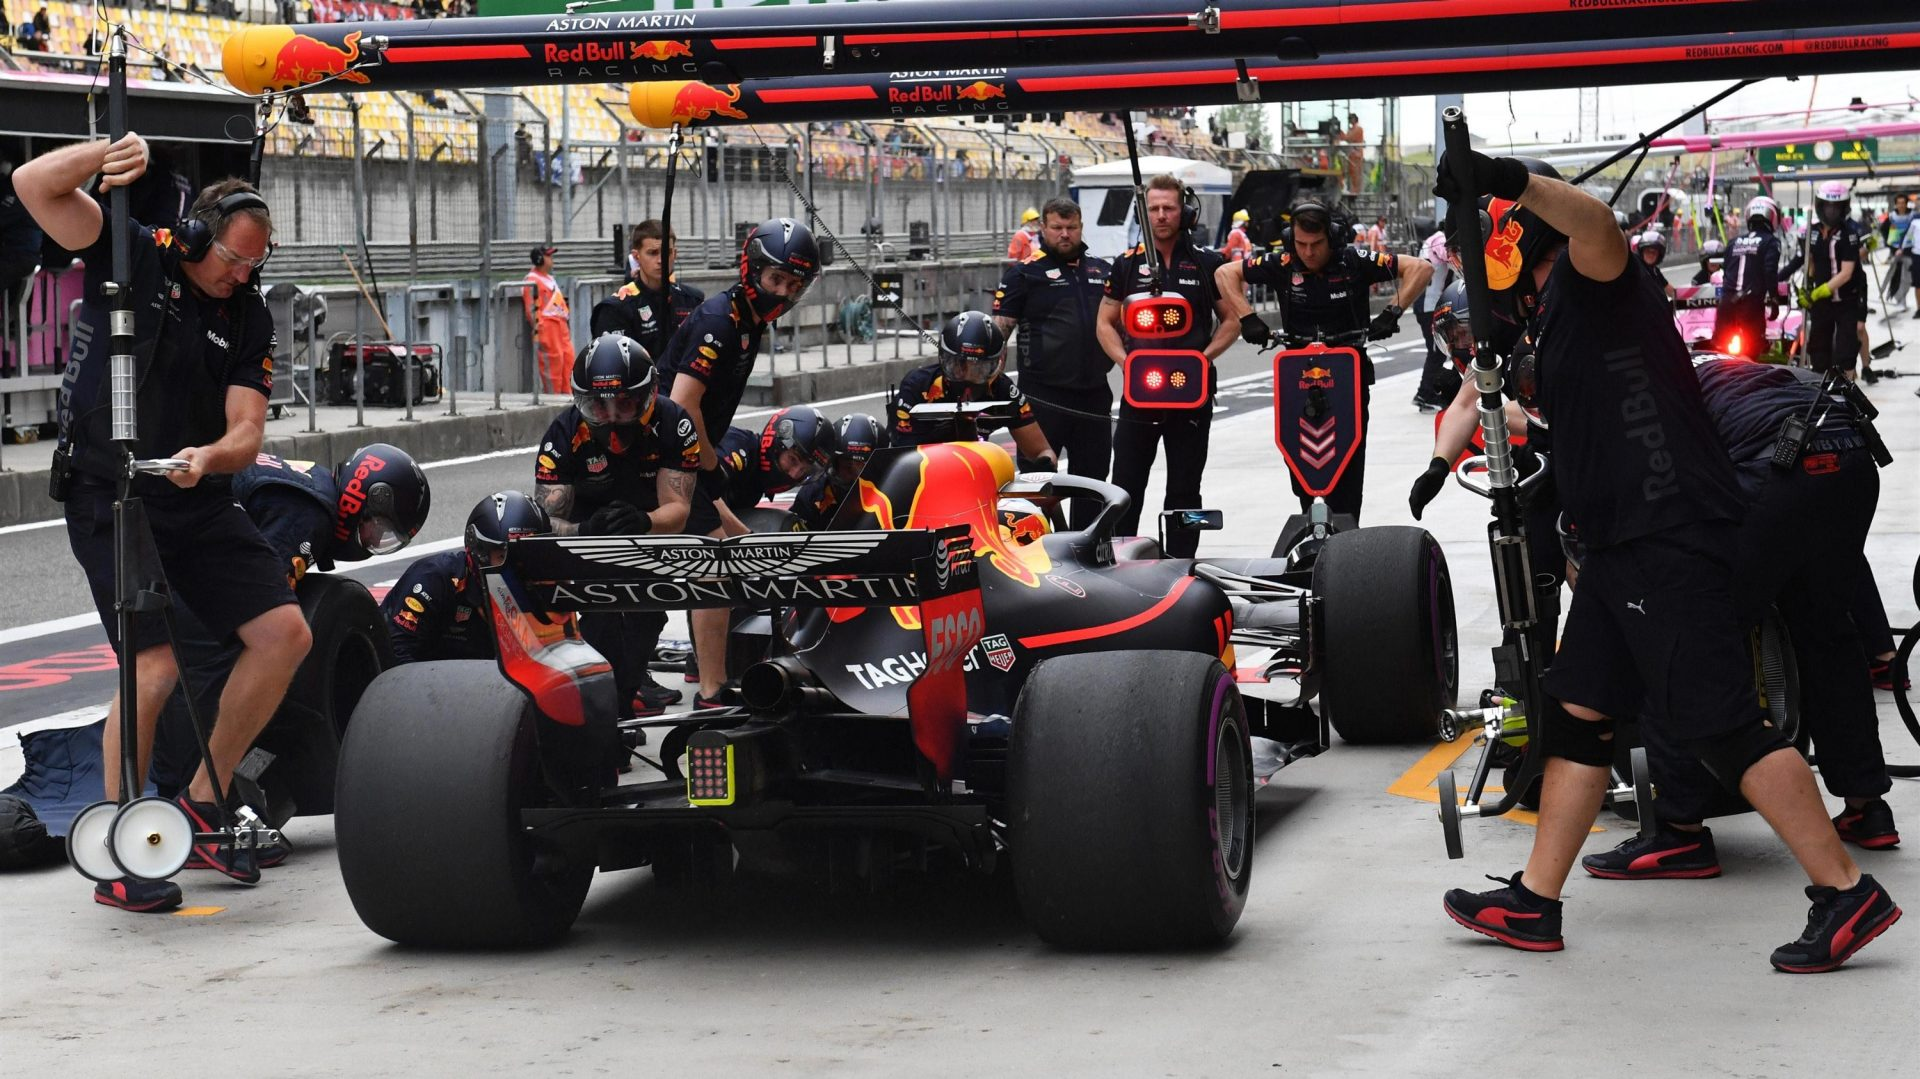 https://www.formula1.com/content/fom-website/en/latest/features/2018/4/gallery--the-best-images-from-friday-in-china/_jcr_content/featureContent/manual_gallery/image25.img.1920.medium.jpg/1523593779548.jpg